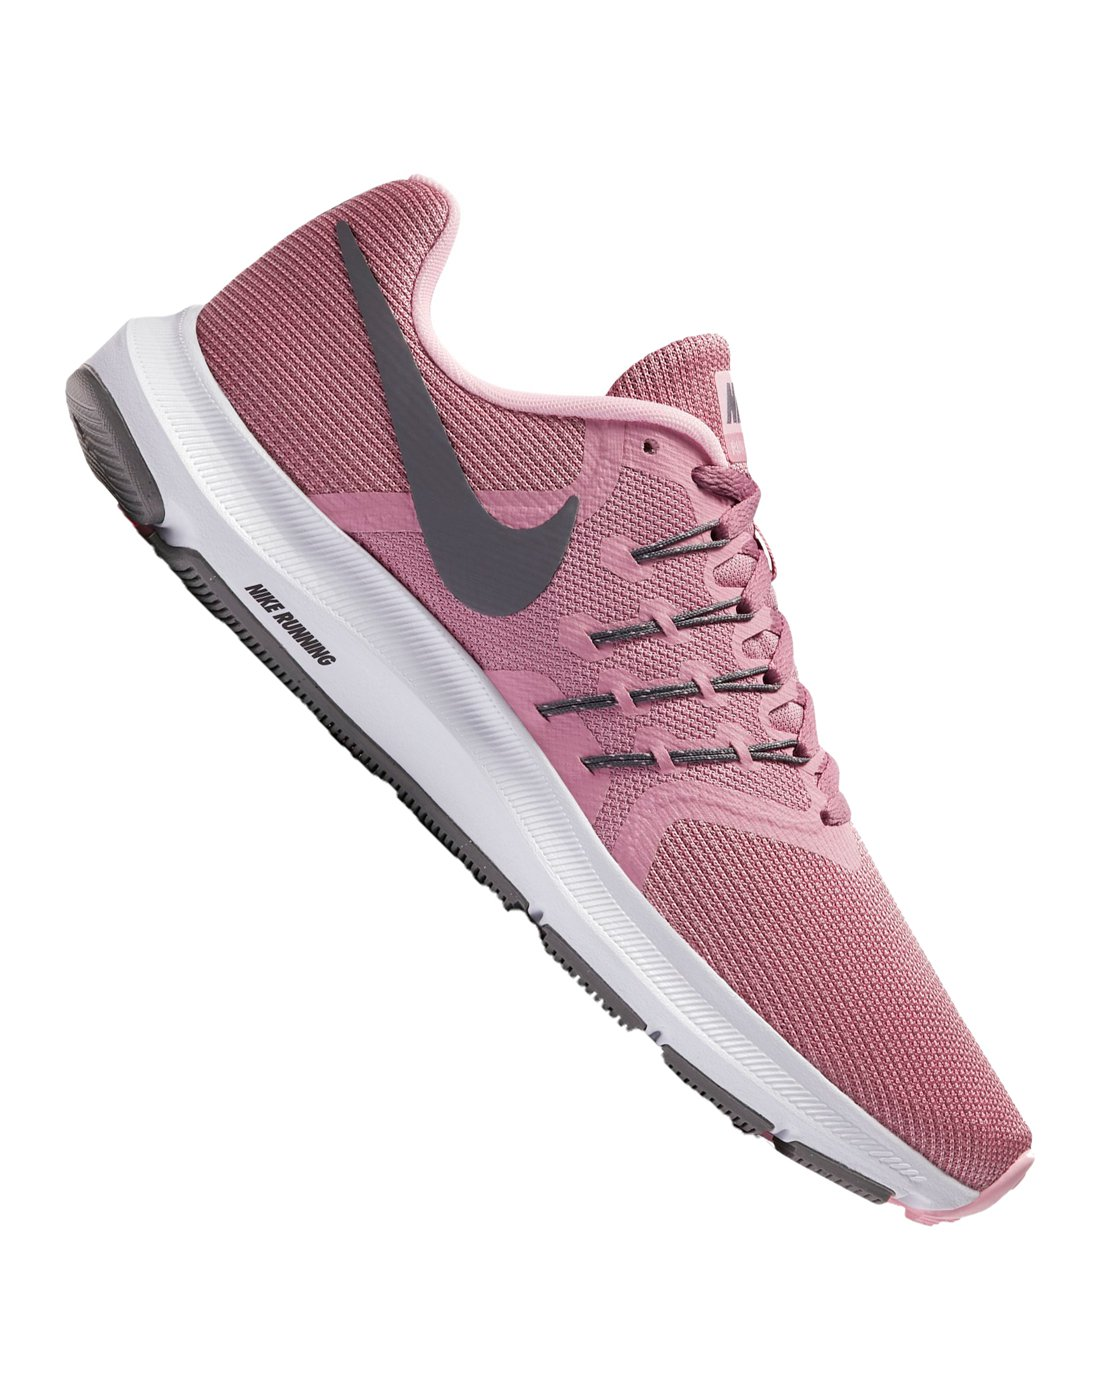 3f31f4289e640c Nike Womens Run Swift